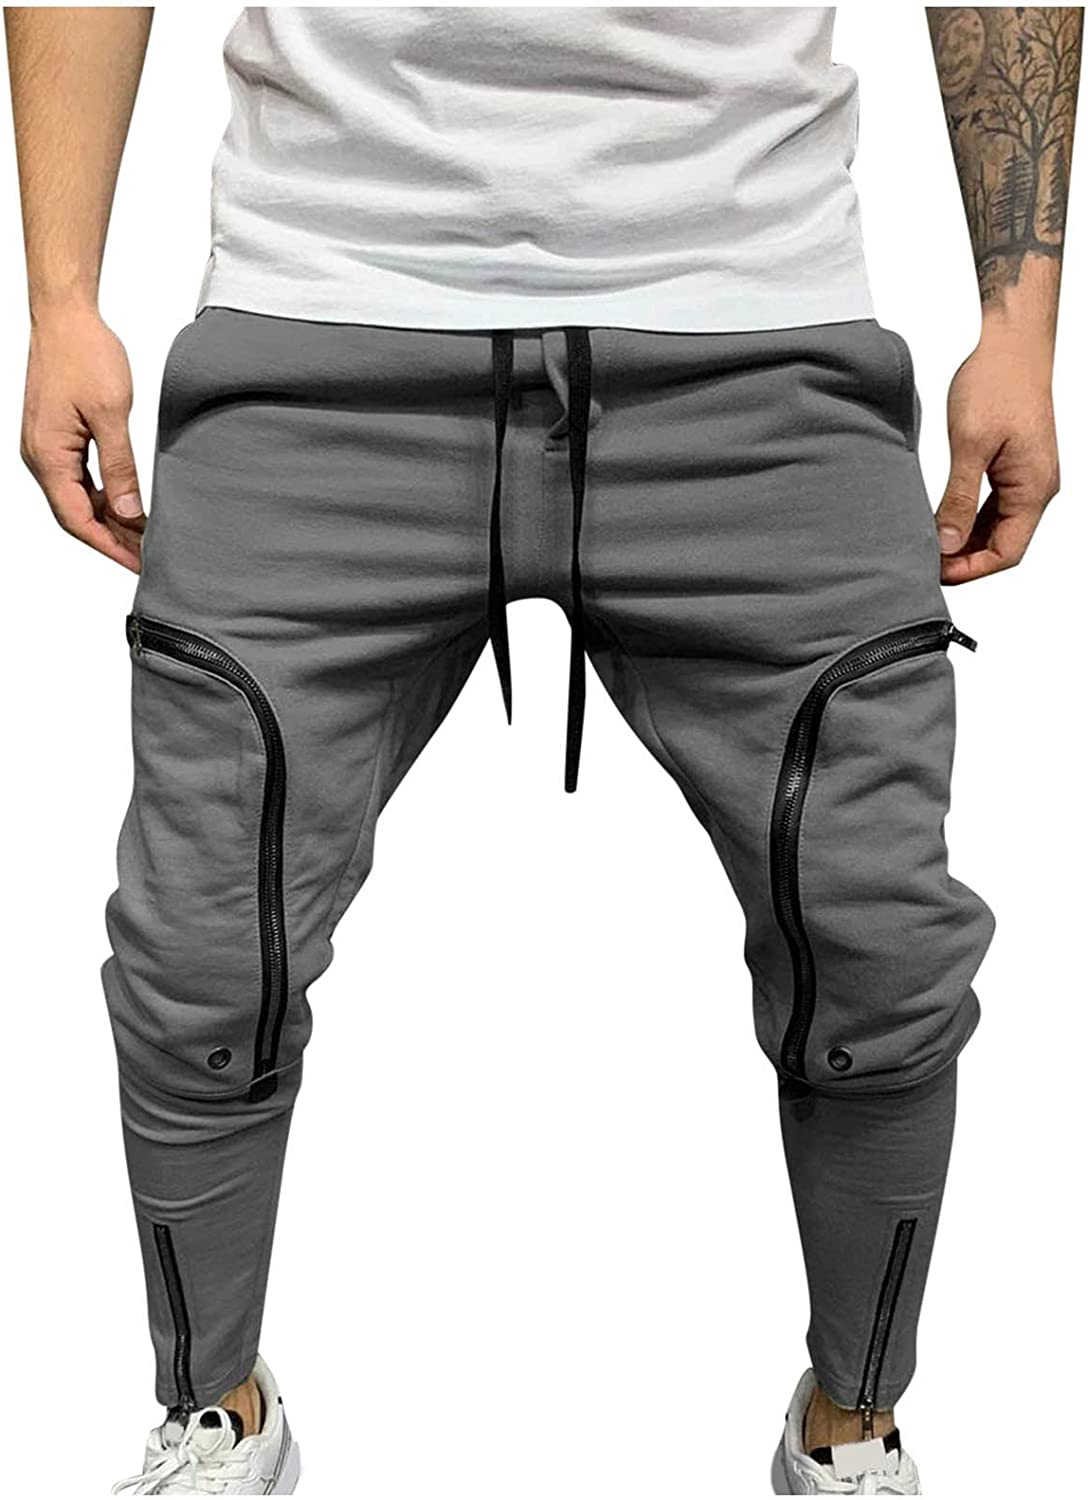 aihihe Cargo Pants for Men with Pockets Relaxed Fit Casual Loose Plus Size Outdoors Sports Trousers Sweatpants